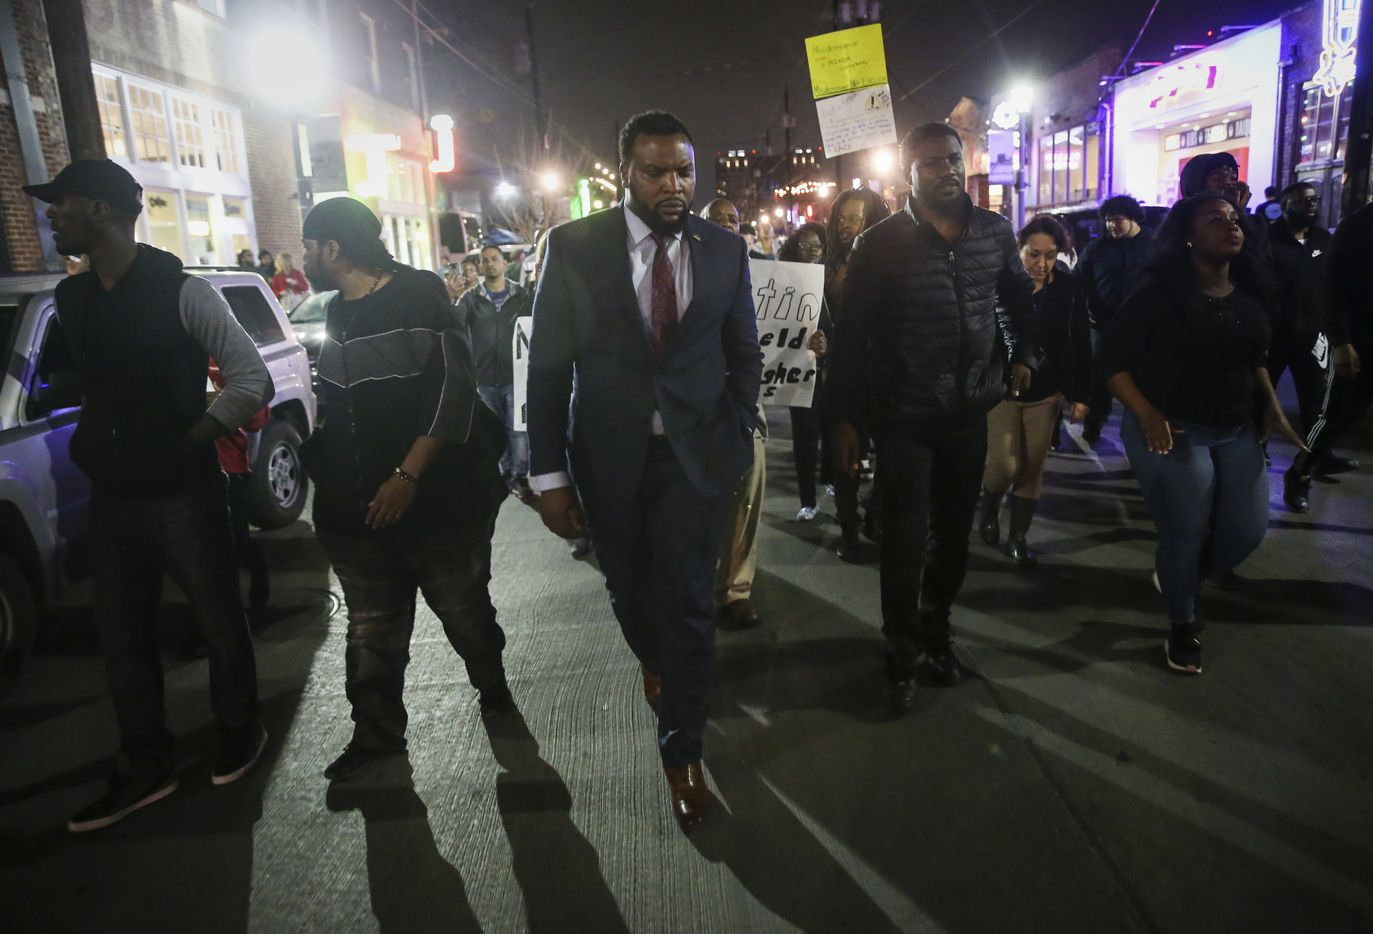 Attorney Lee Merritt, center with dress tie, joins demonstrators march through the street during a protest Saturday, March 23, 2019 in Dallas' Deep Ellum neighborhood. Civil rights activists are calling for felony charges, including hate-crimes charges, to be filed against Austin Shuffield, 30, who currently faces misdemeanor charges of assault causing bodily injury and interfering with an emergency call in connection with a violent attack Thursday morning that began with a parking dispute and escalated into a physical confrontation. A lawyer for the unidentified 24-year-old woman said Shuffield berated the woman with racial slurs.